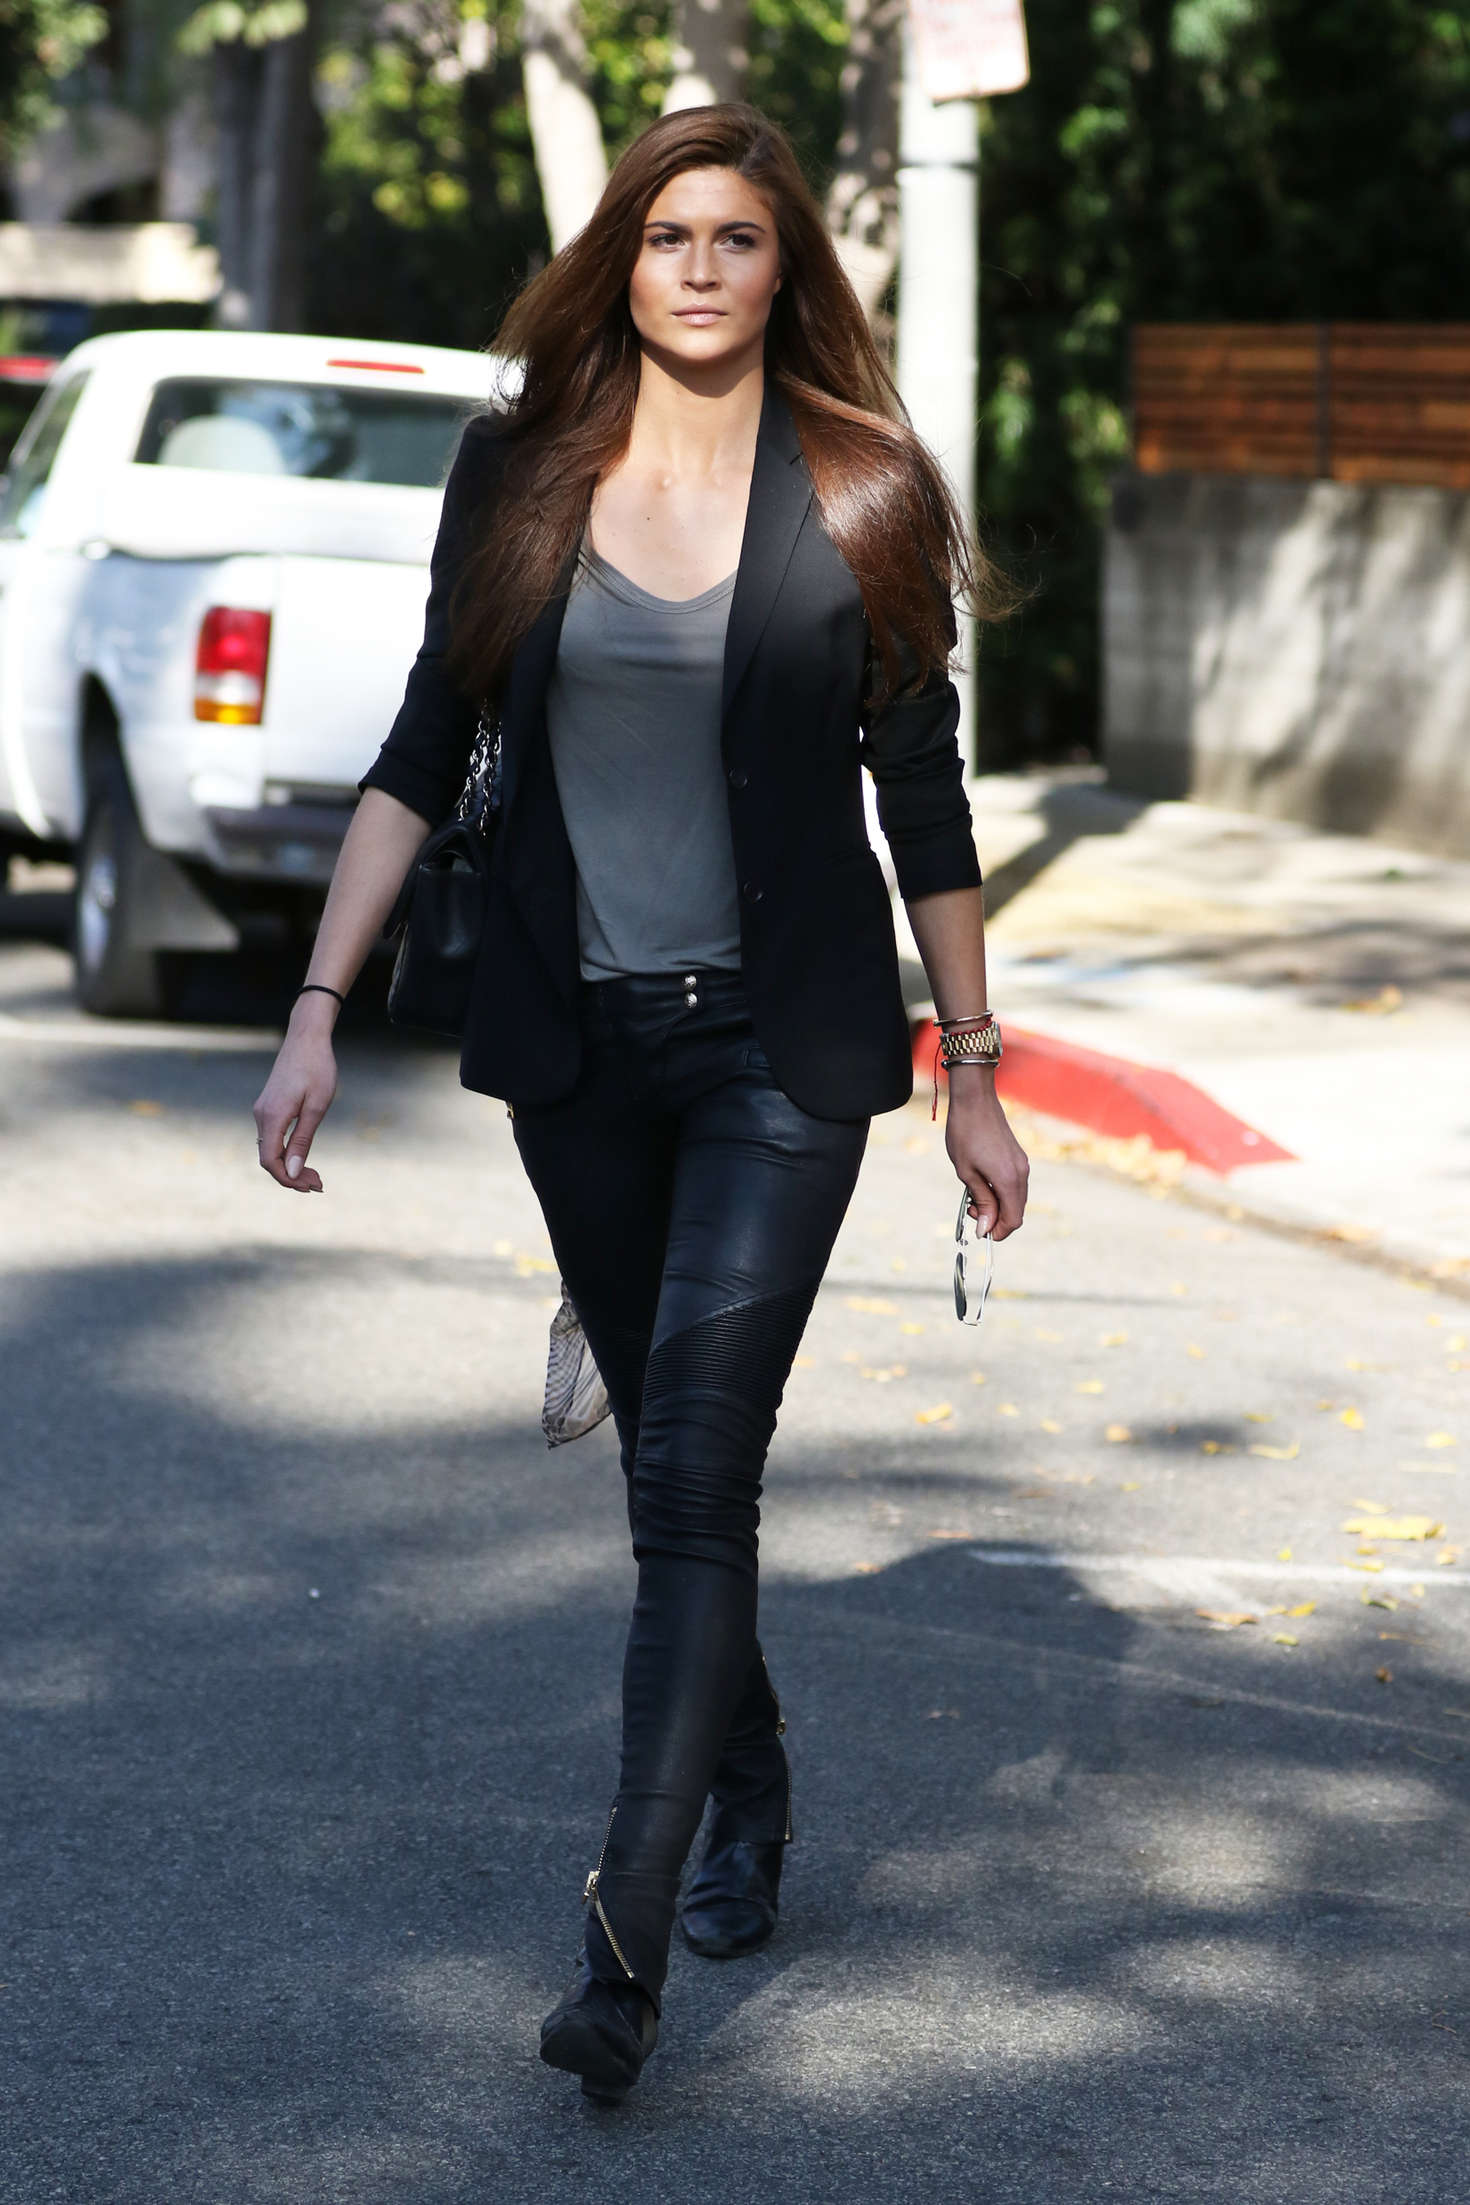 Dutch Square Mall >> Lina Sandberg in Leather at Urth Caffe in West Hollywood ...